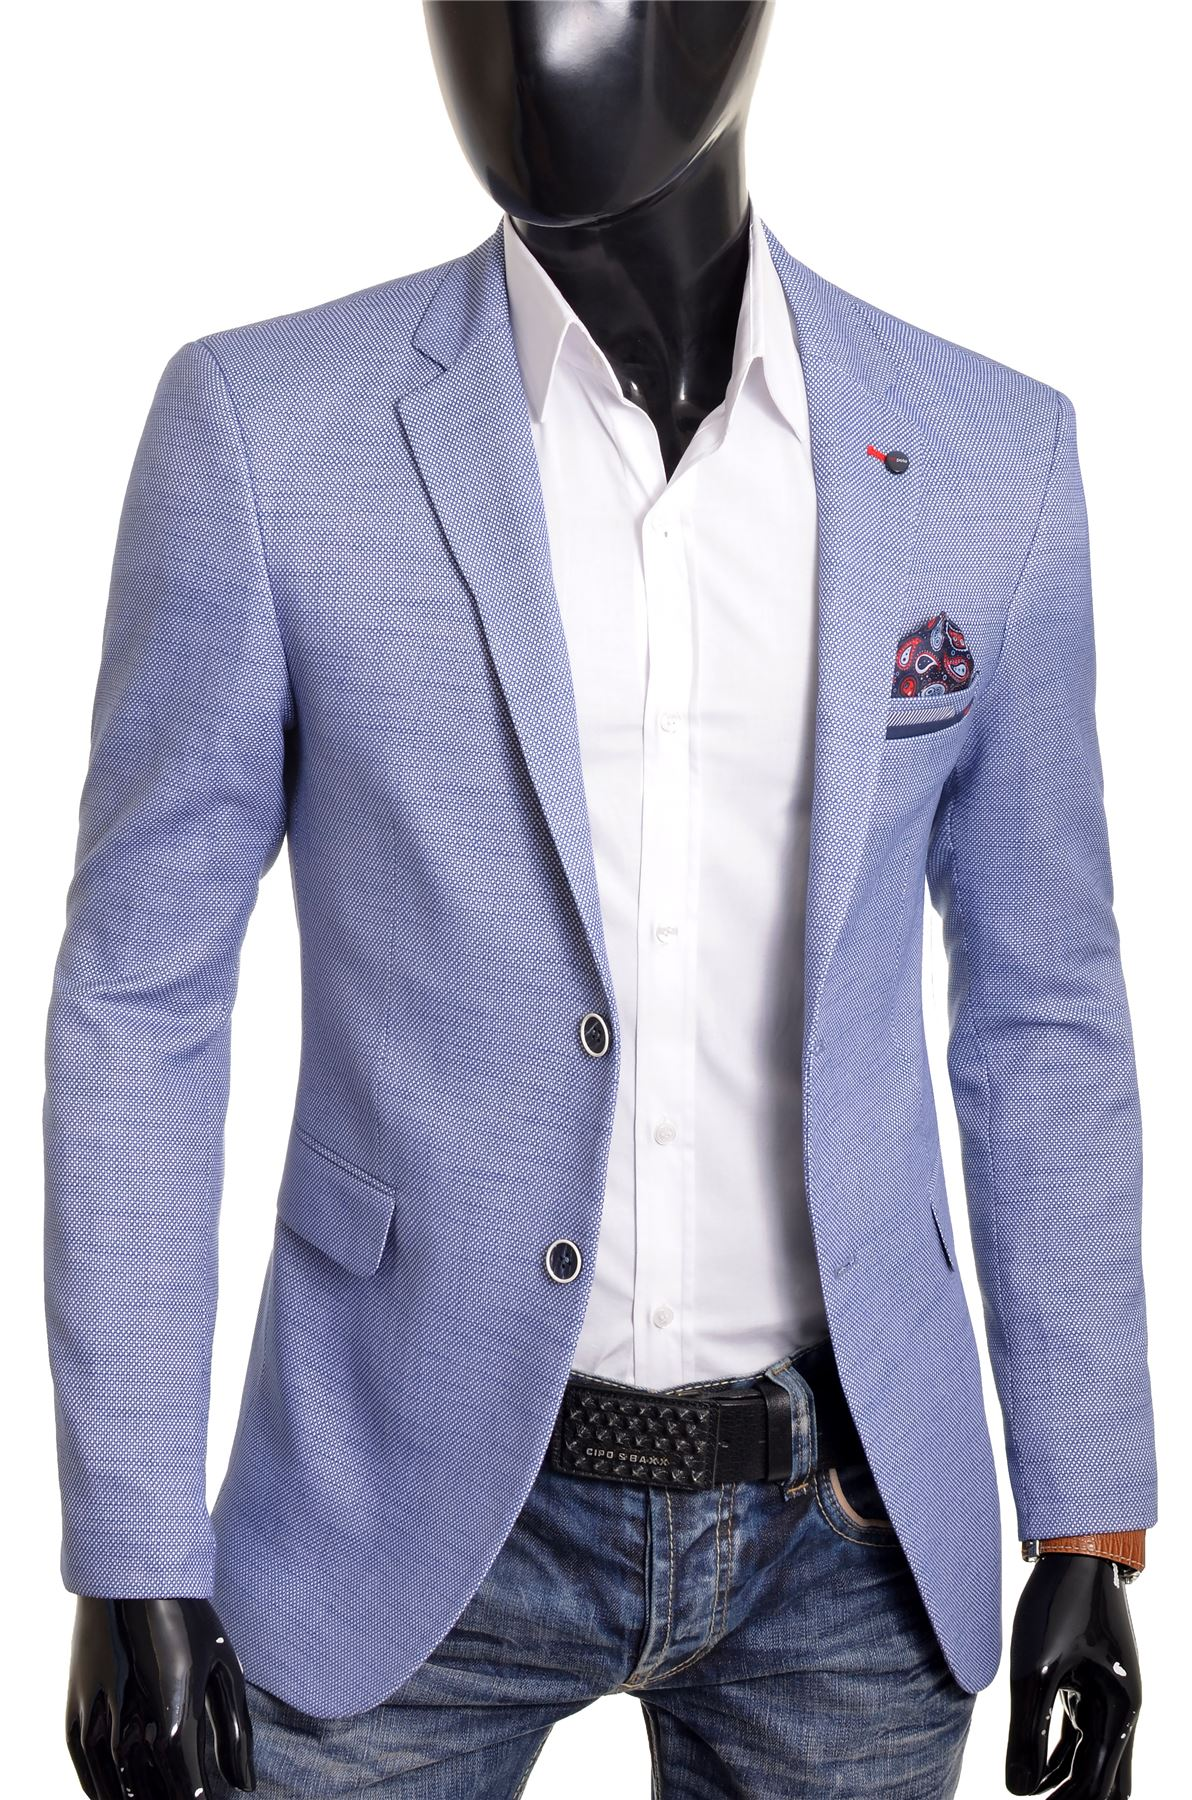 Mens-Blazer-Jacket-Casual-Formal-Spotted-Pattern-Paisley-Finish-UK-Size-Cotton thumbnail 3